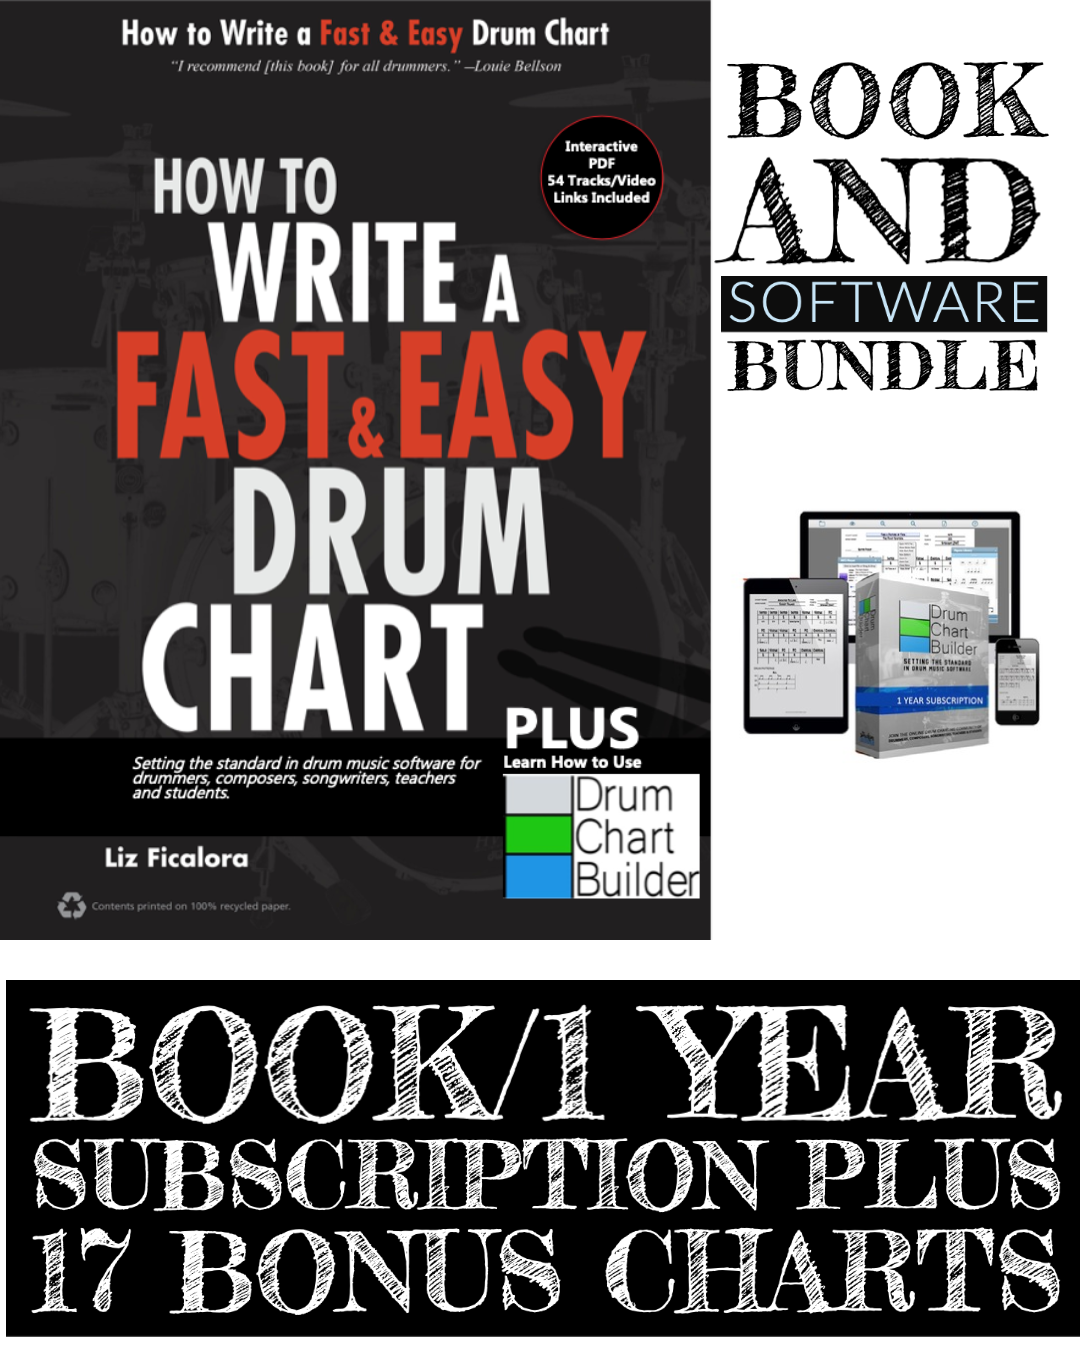 BOOK BUNDLE PLUS 17 BONUS CHARTS